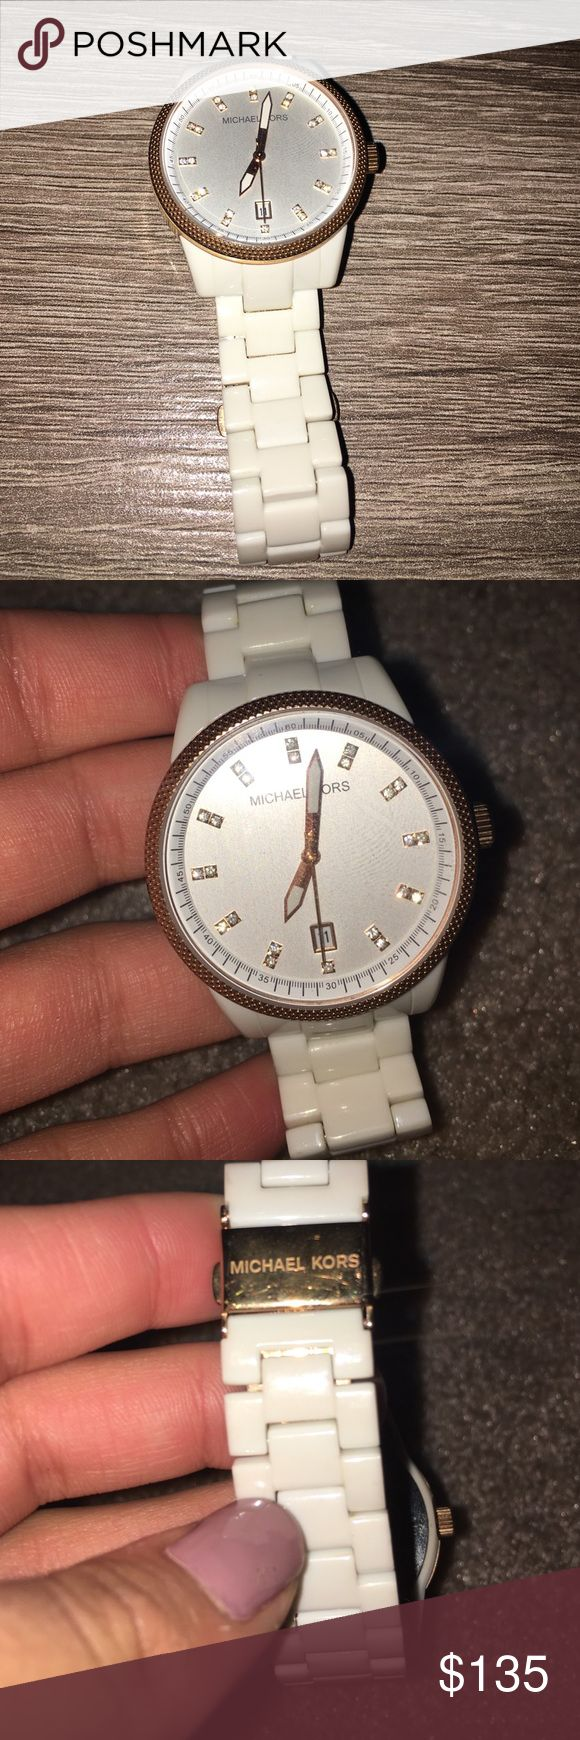 MK watch Authentic Rose gold trim and white plated Michael Kors watch, will replace the battery such a cute piece just never use a watch Michael Kors Jewelry